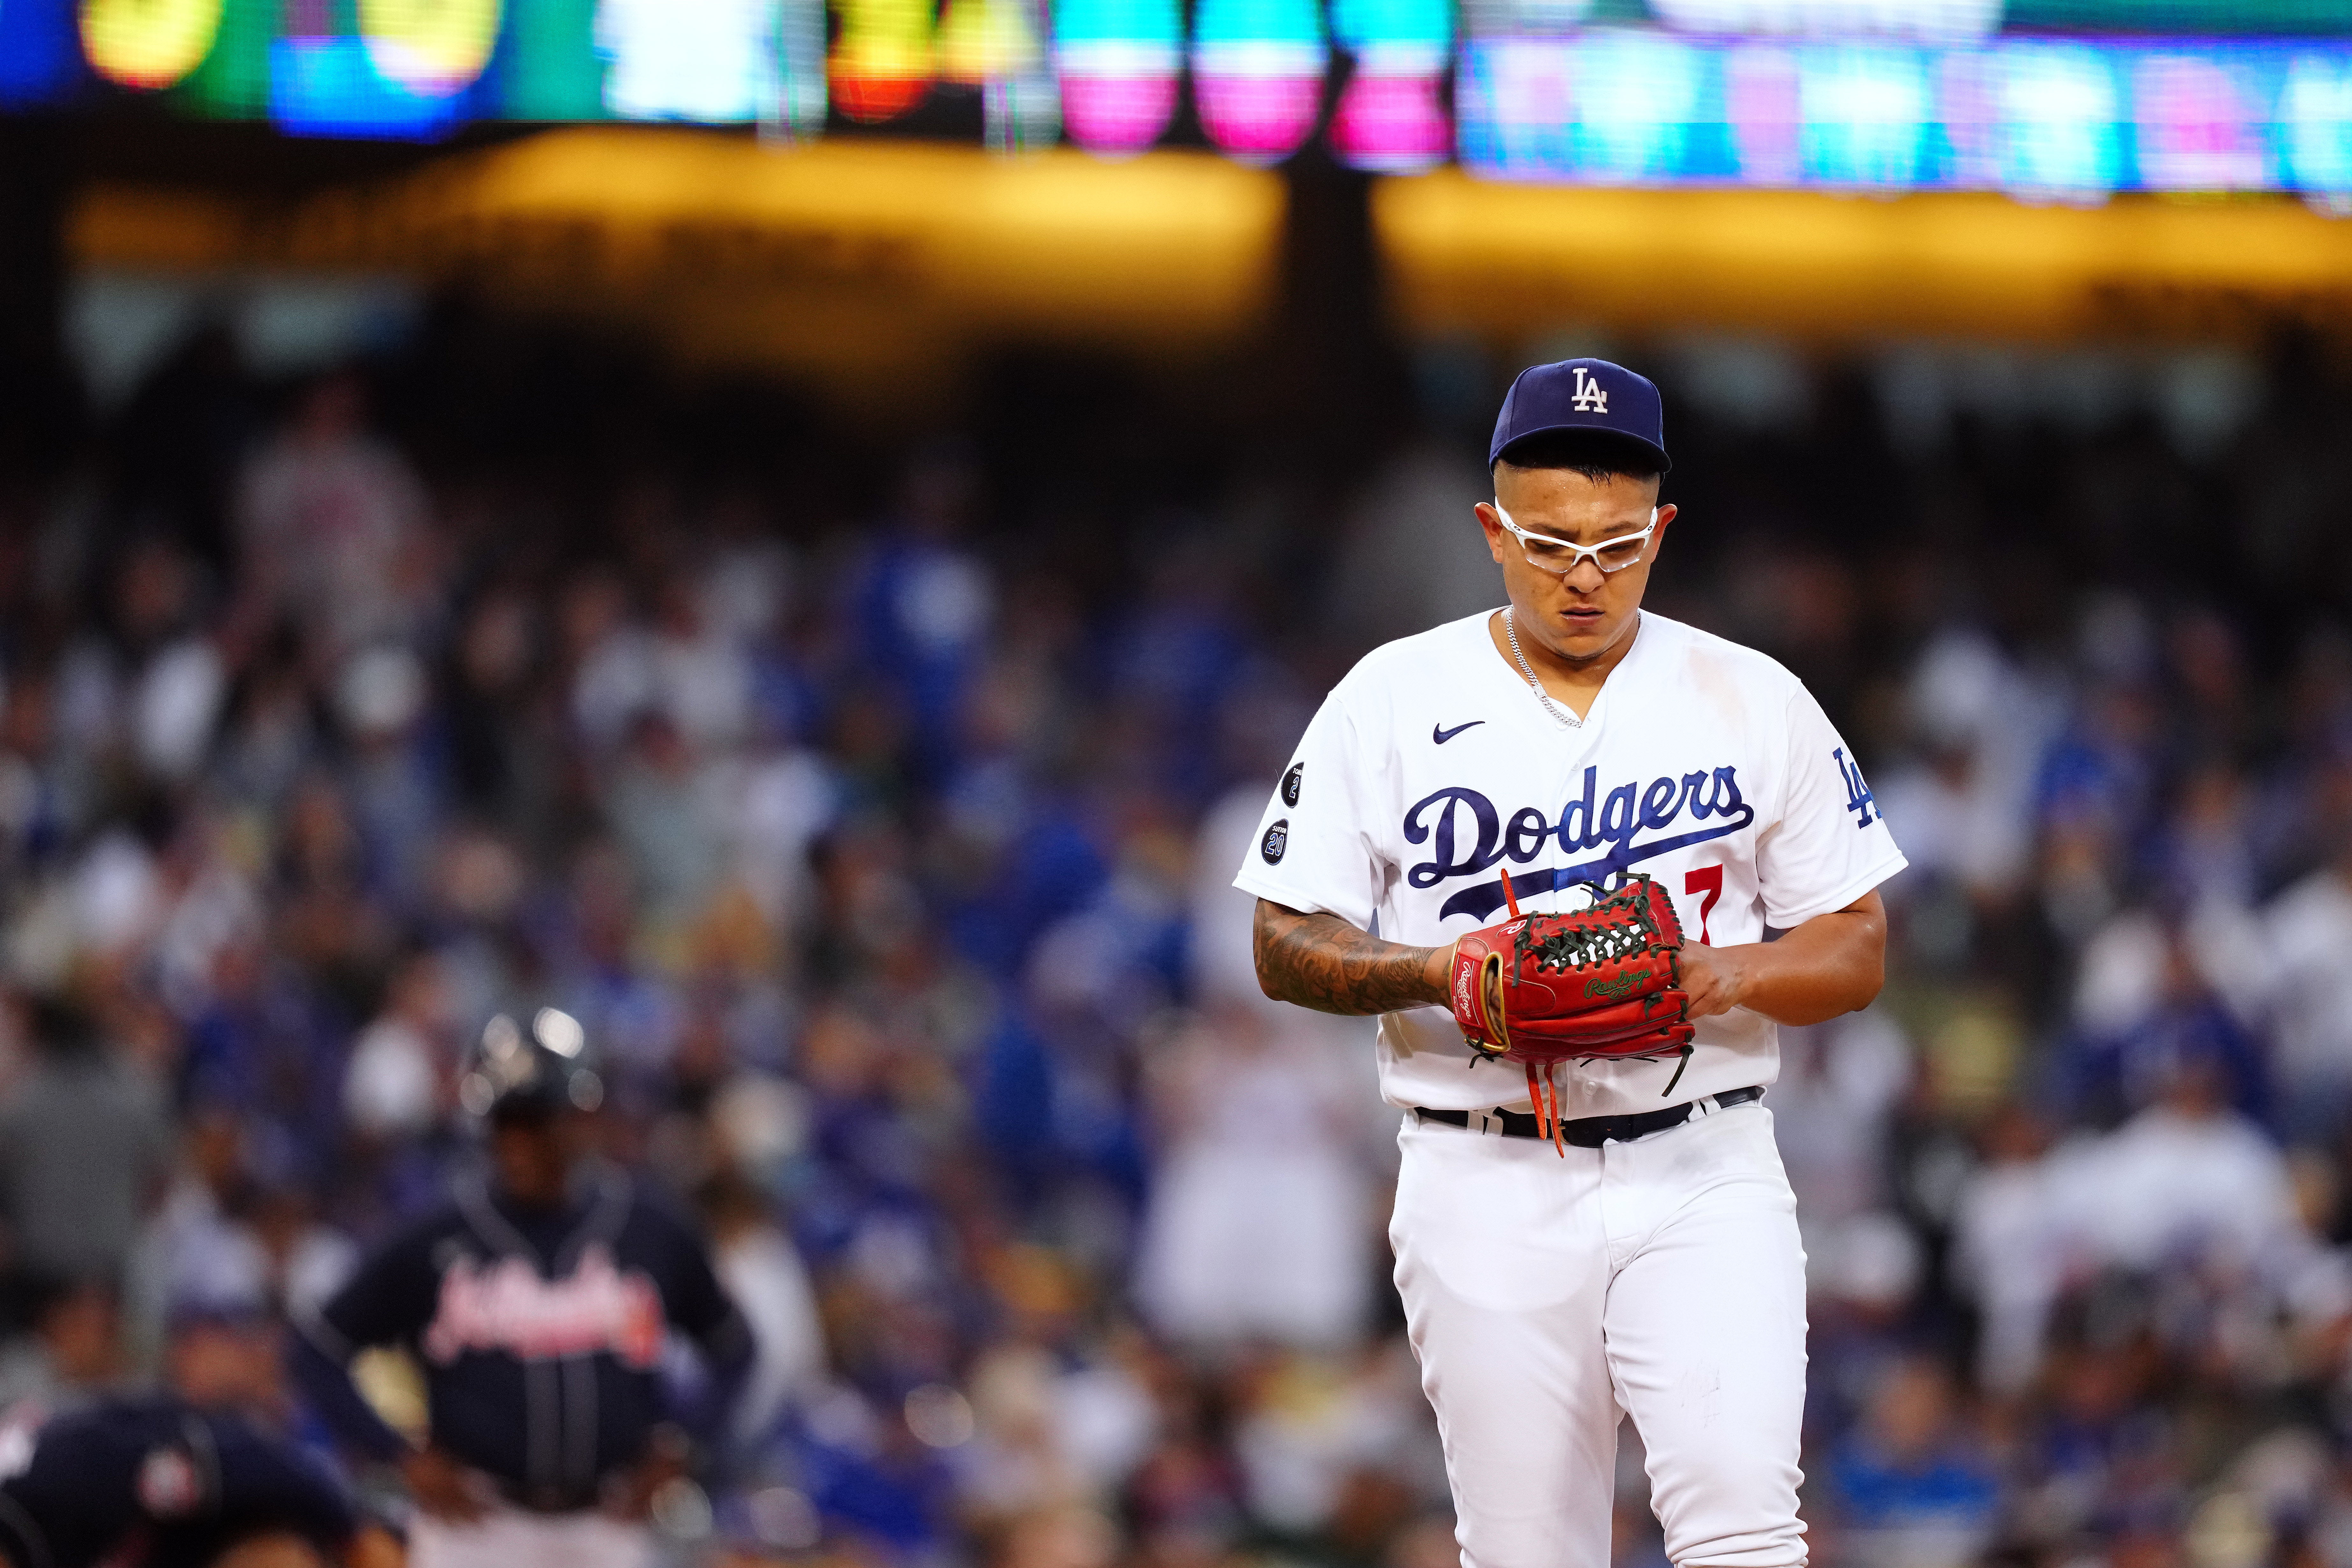 Deja vu all Over Again as Dodgers Lose to Braves 9-2 in Game 4, Facing 3-1 NLCS Deficit for Second Straight Year